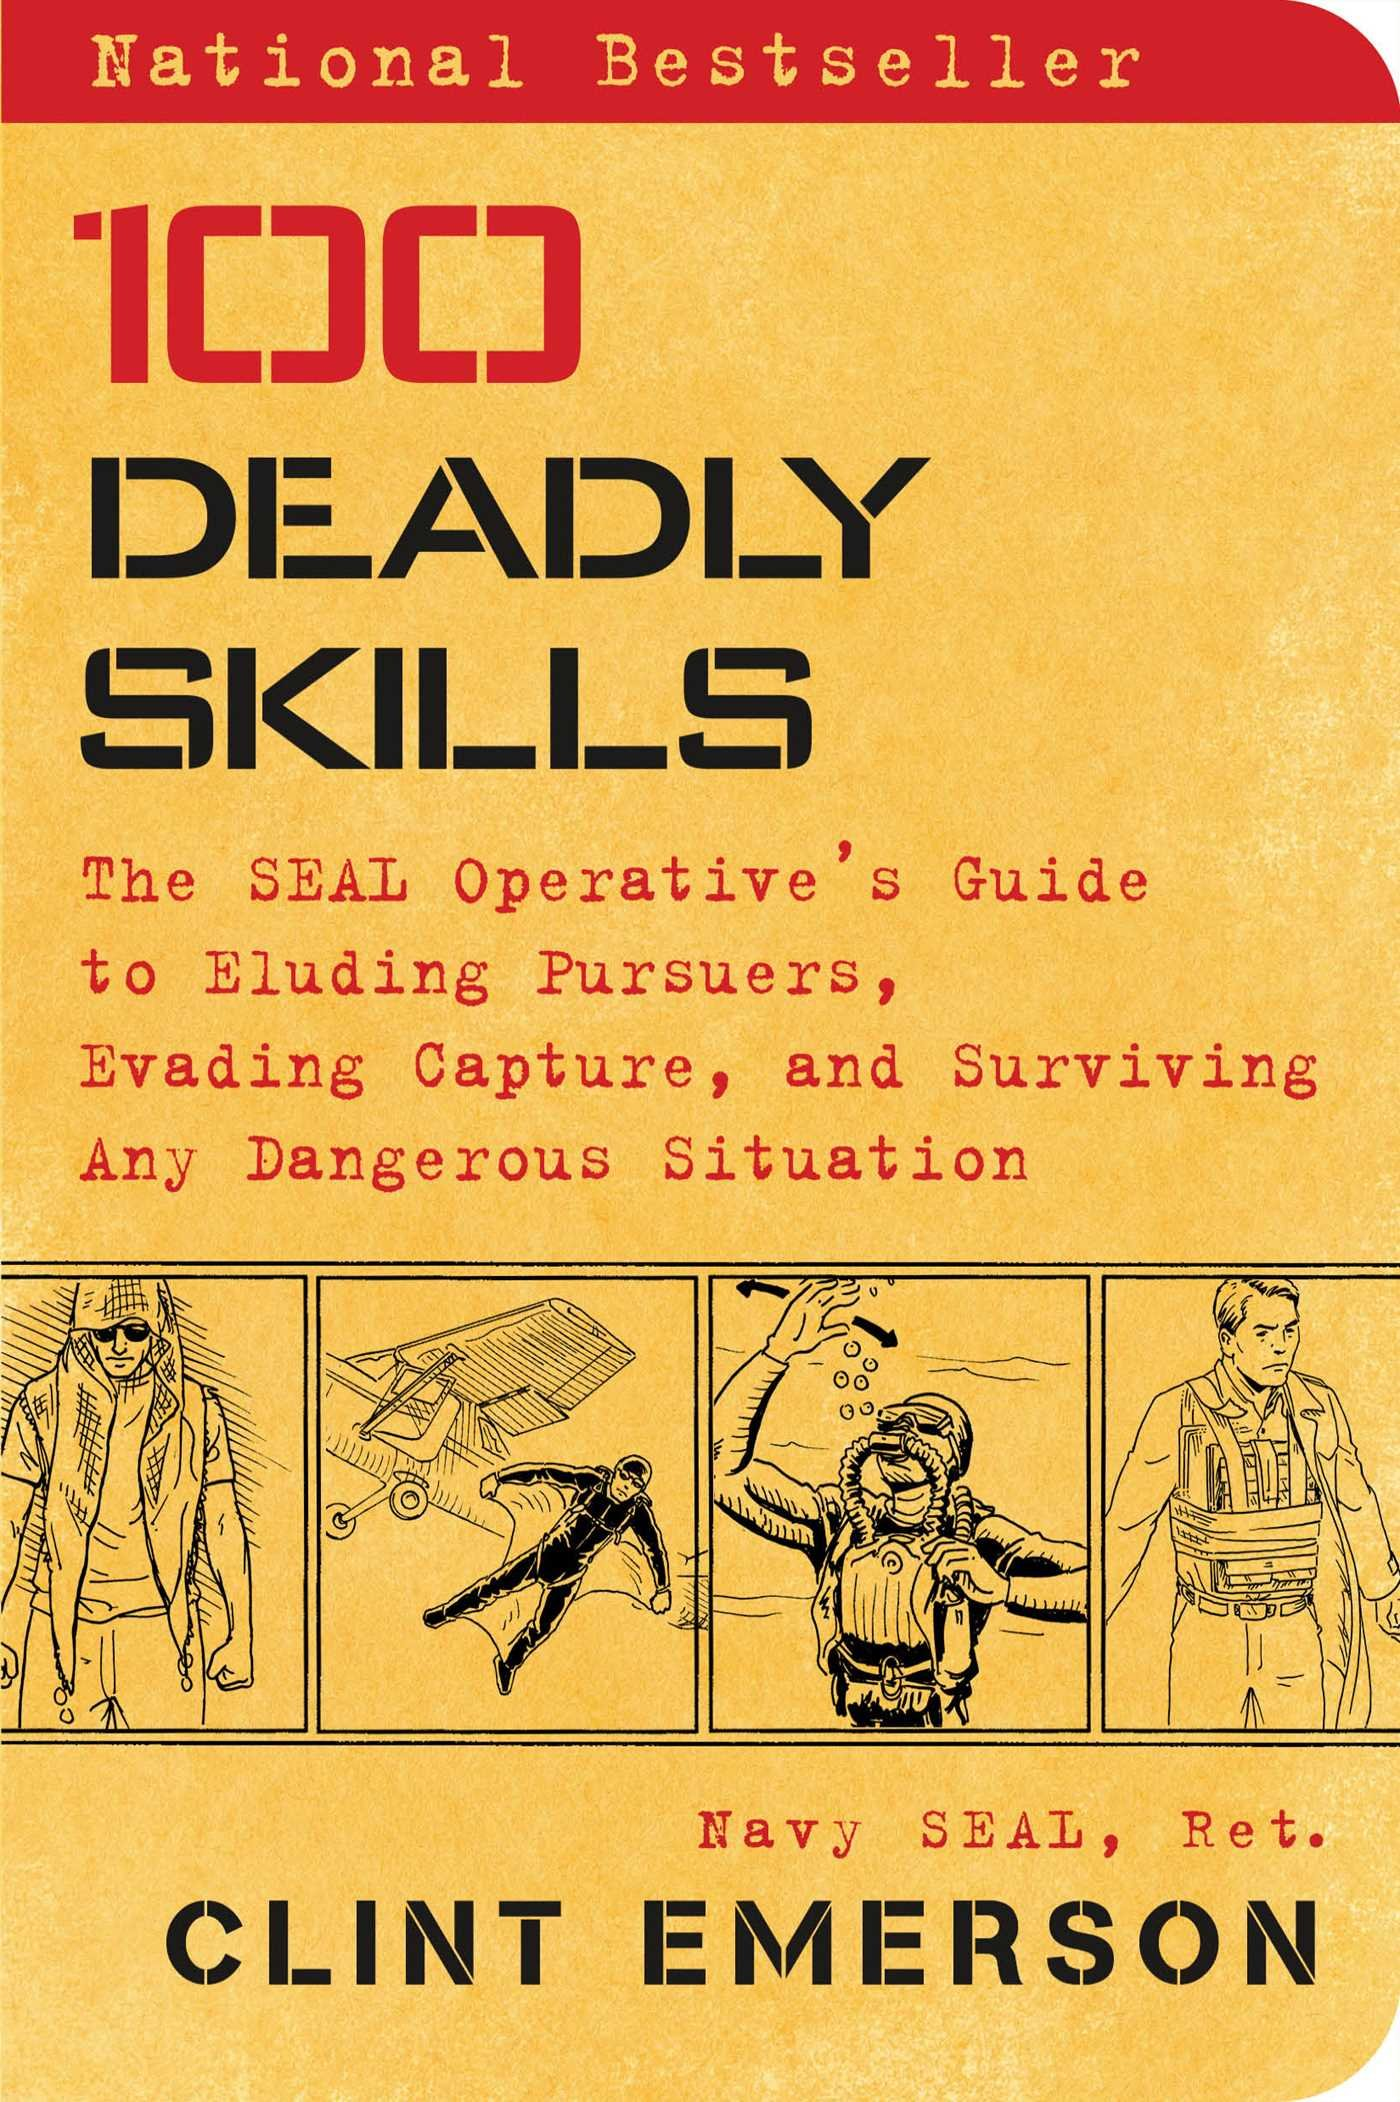 Emerson, 100 DEADLY SKILLS, US cover.jpg